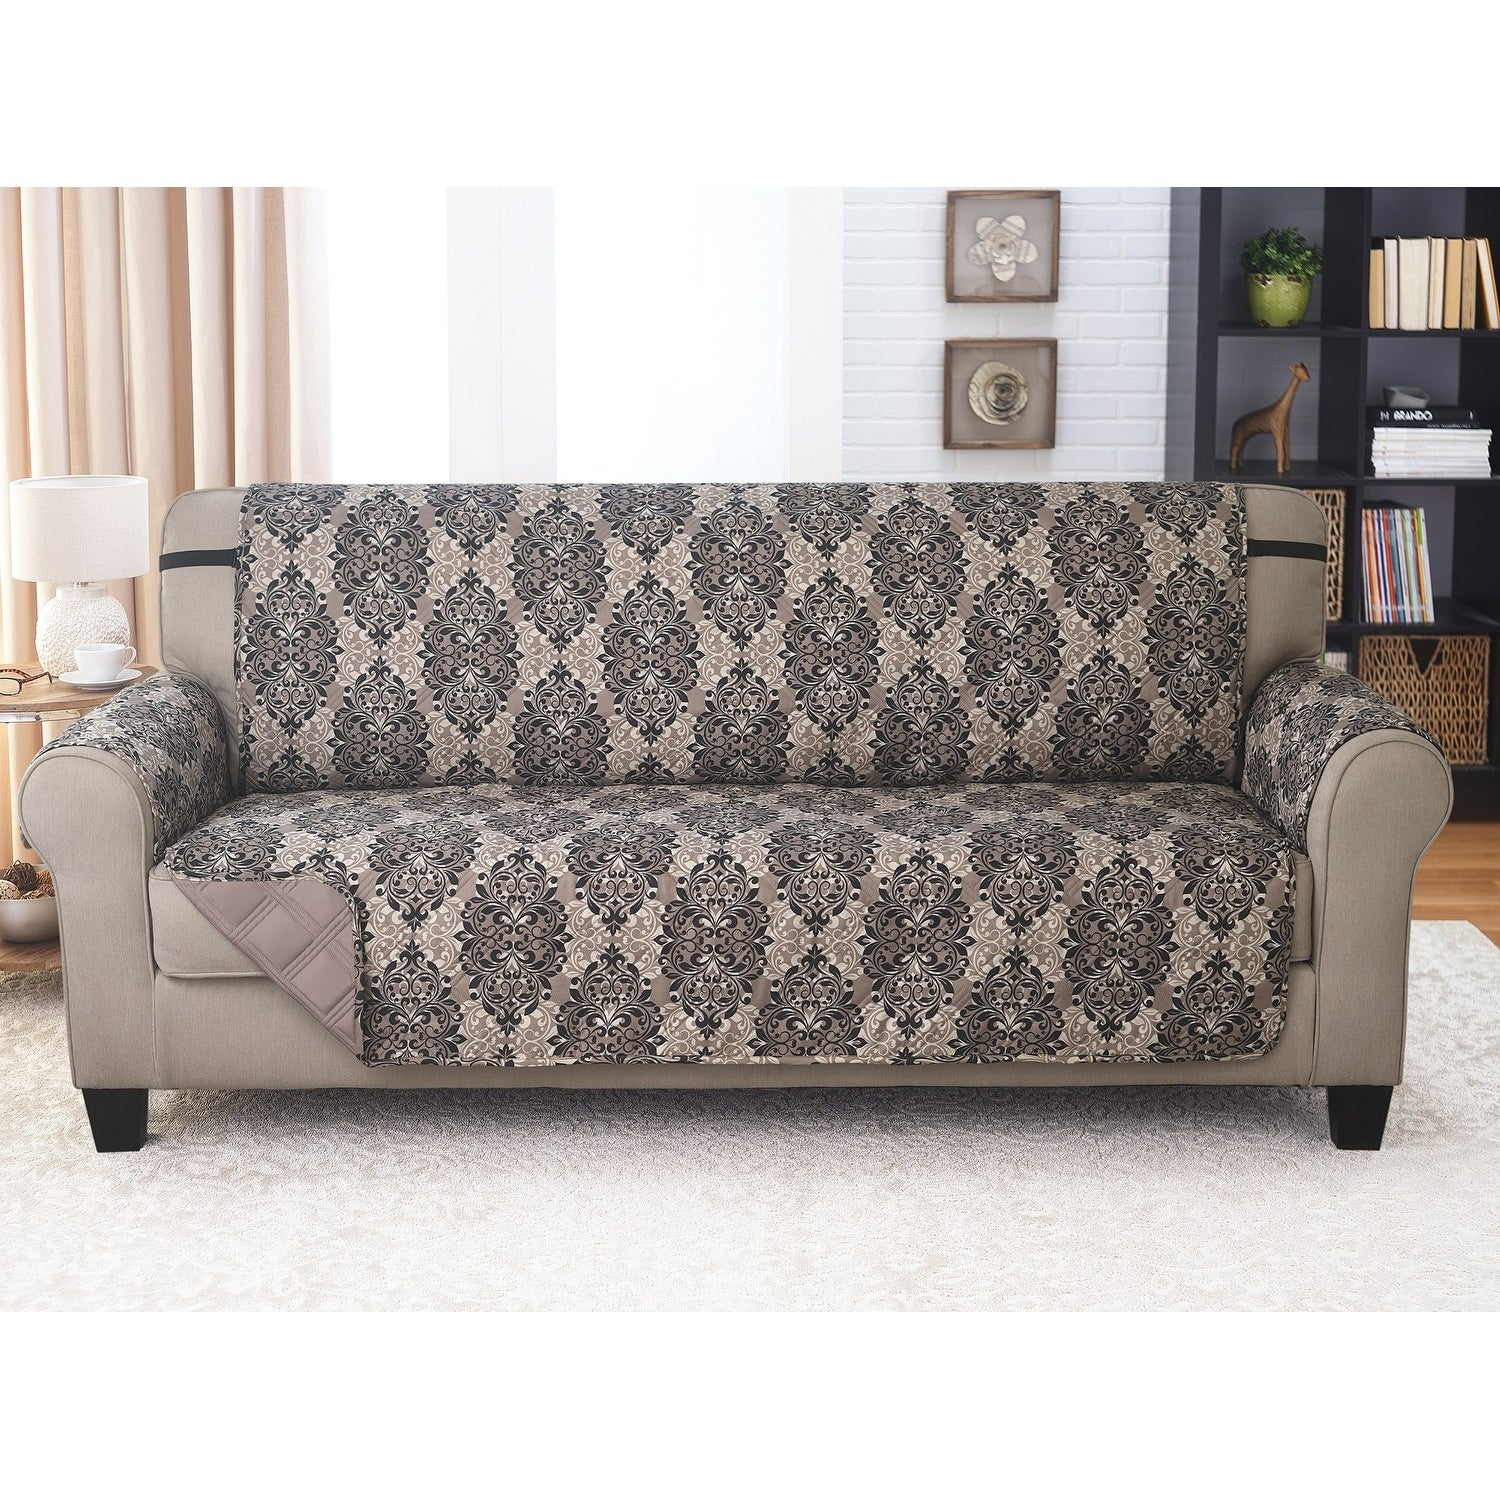 Sofa Furniture Protector French